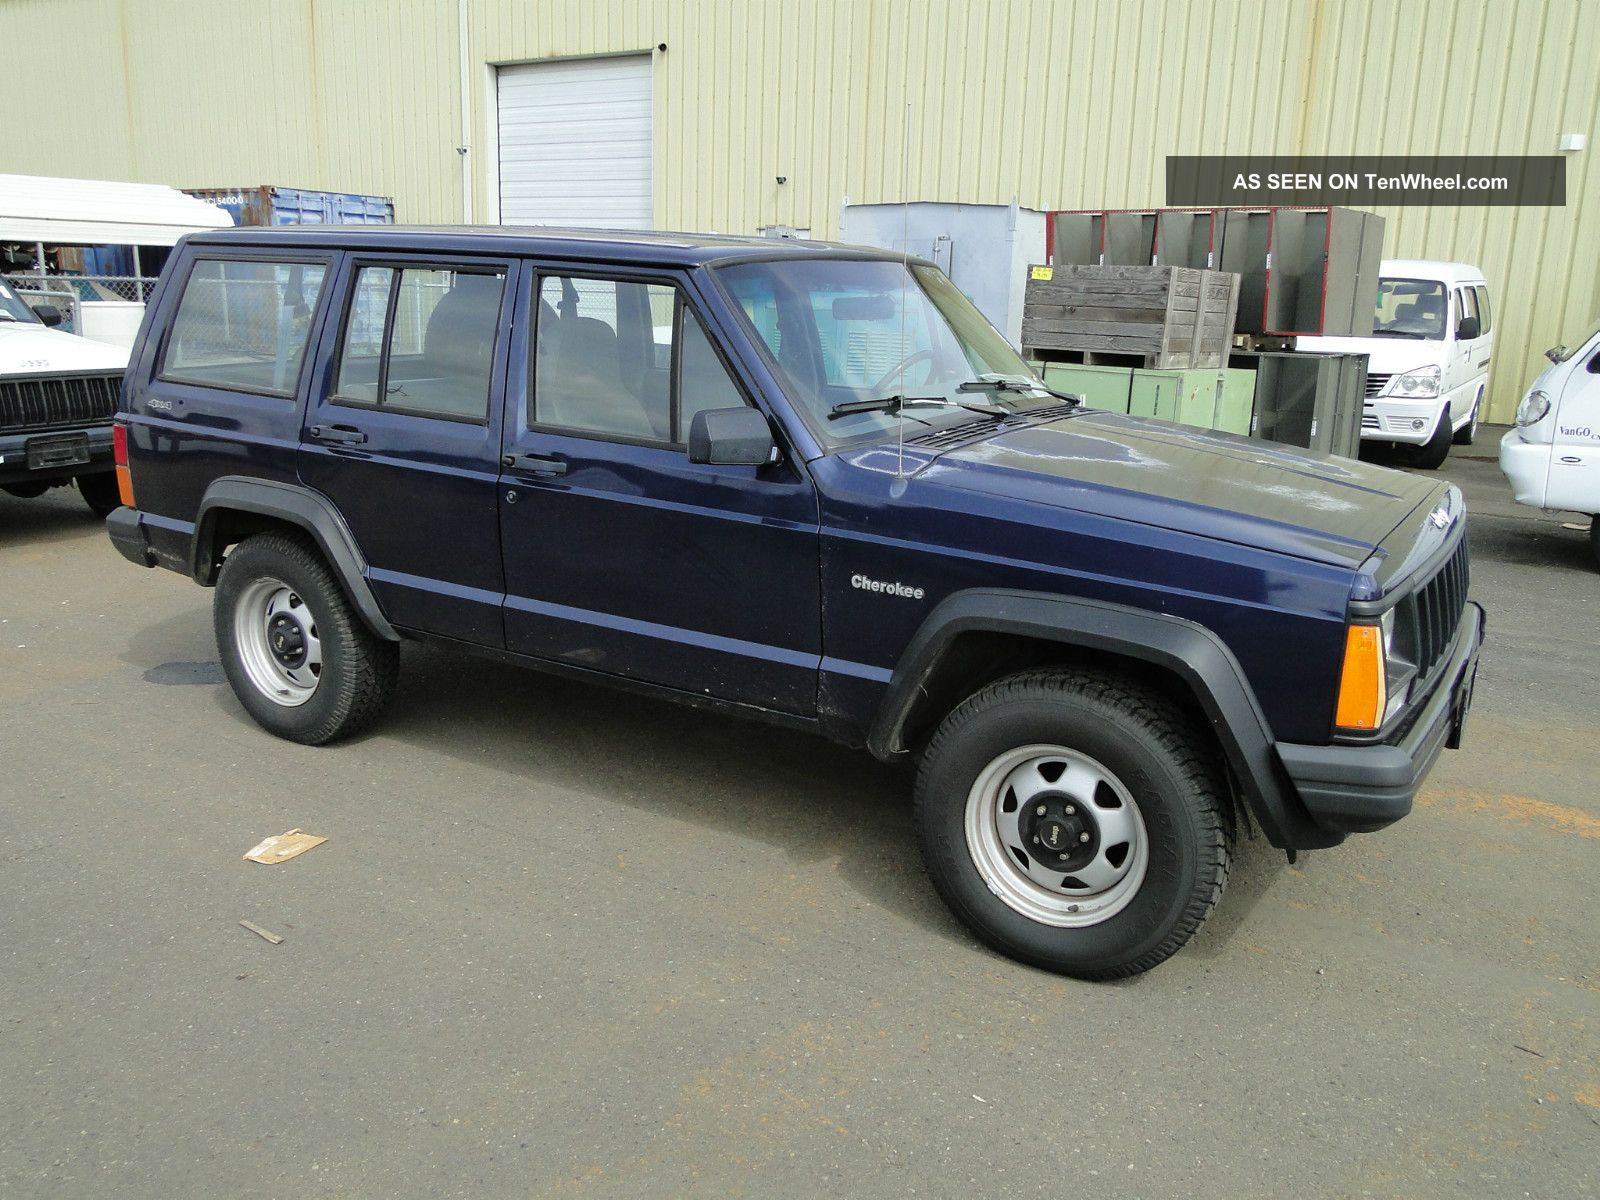 1996 Jeep Cherokee Se 4 - Door 4wd Cherokee photo